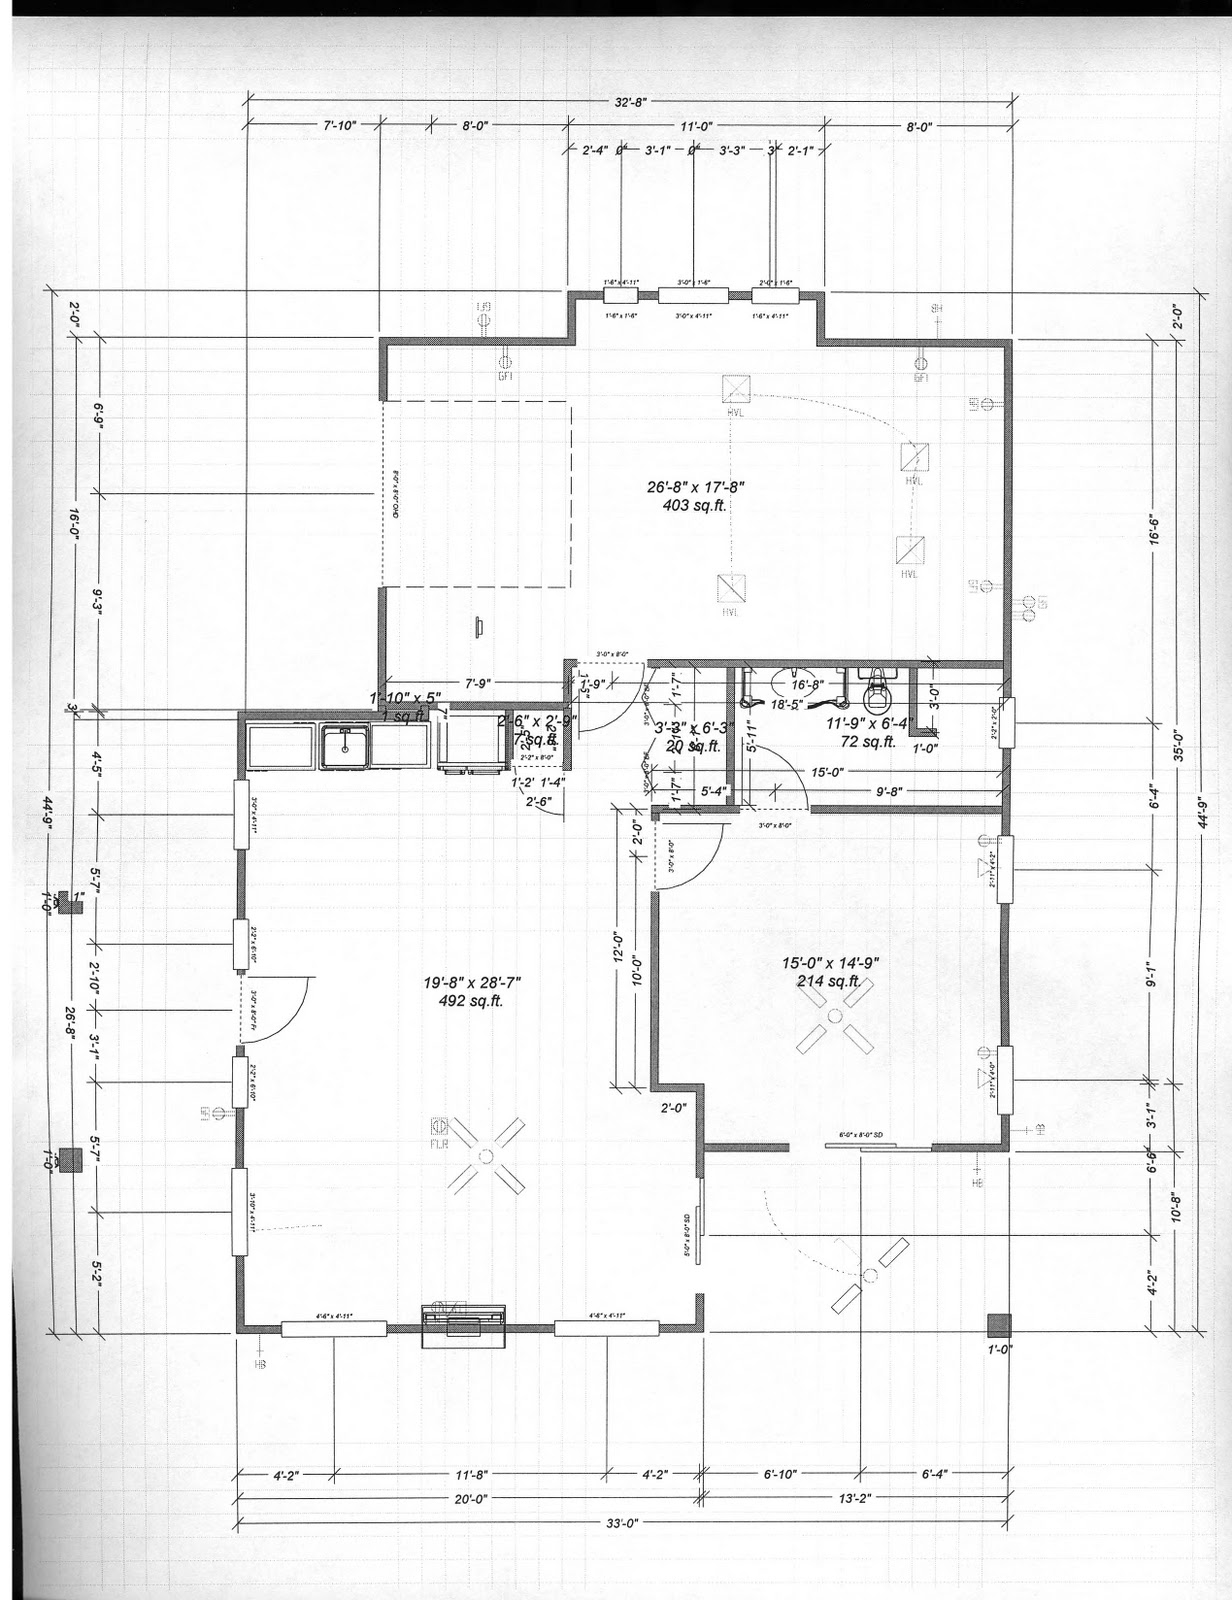 Antique Style Casita Design Floor Plan